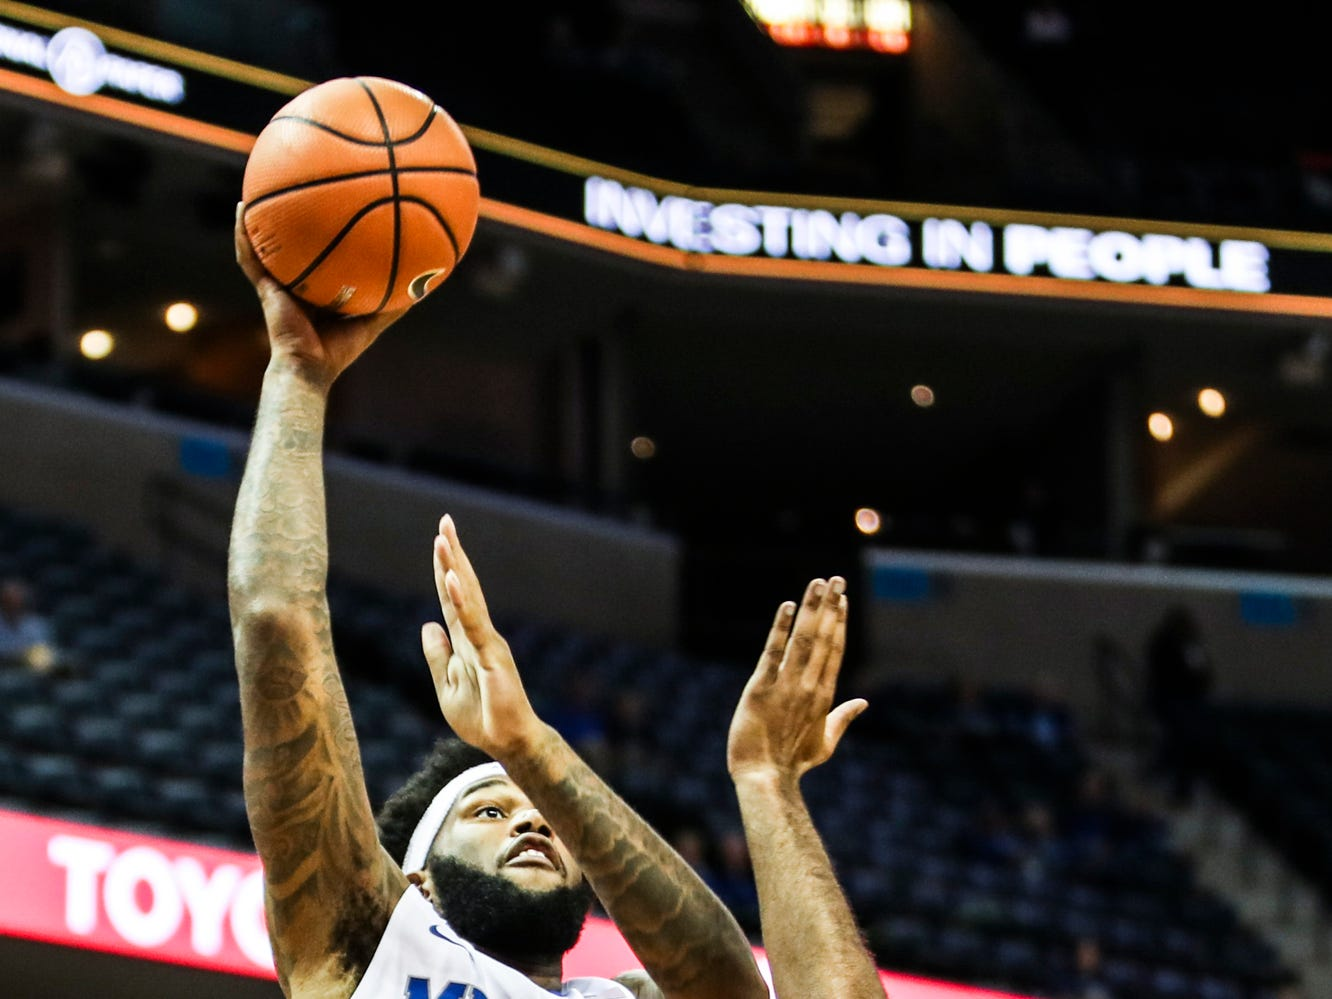 December 02, 2017 - Memphis' Mike Parks Jr. goes up for a shot during Saturday's game versus the Mercer Bears at the FedExForum.